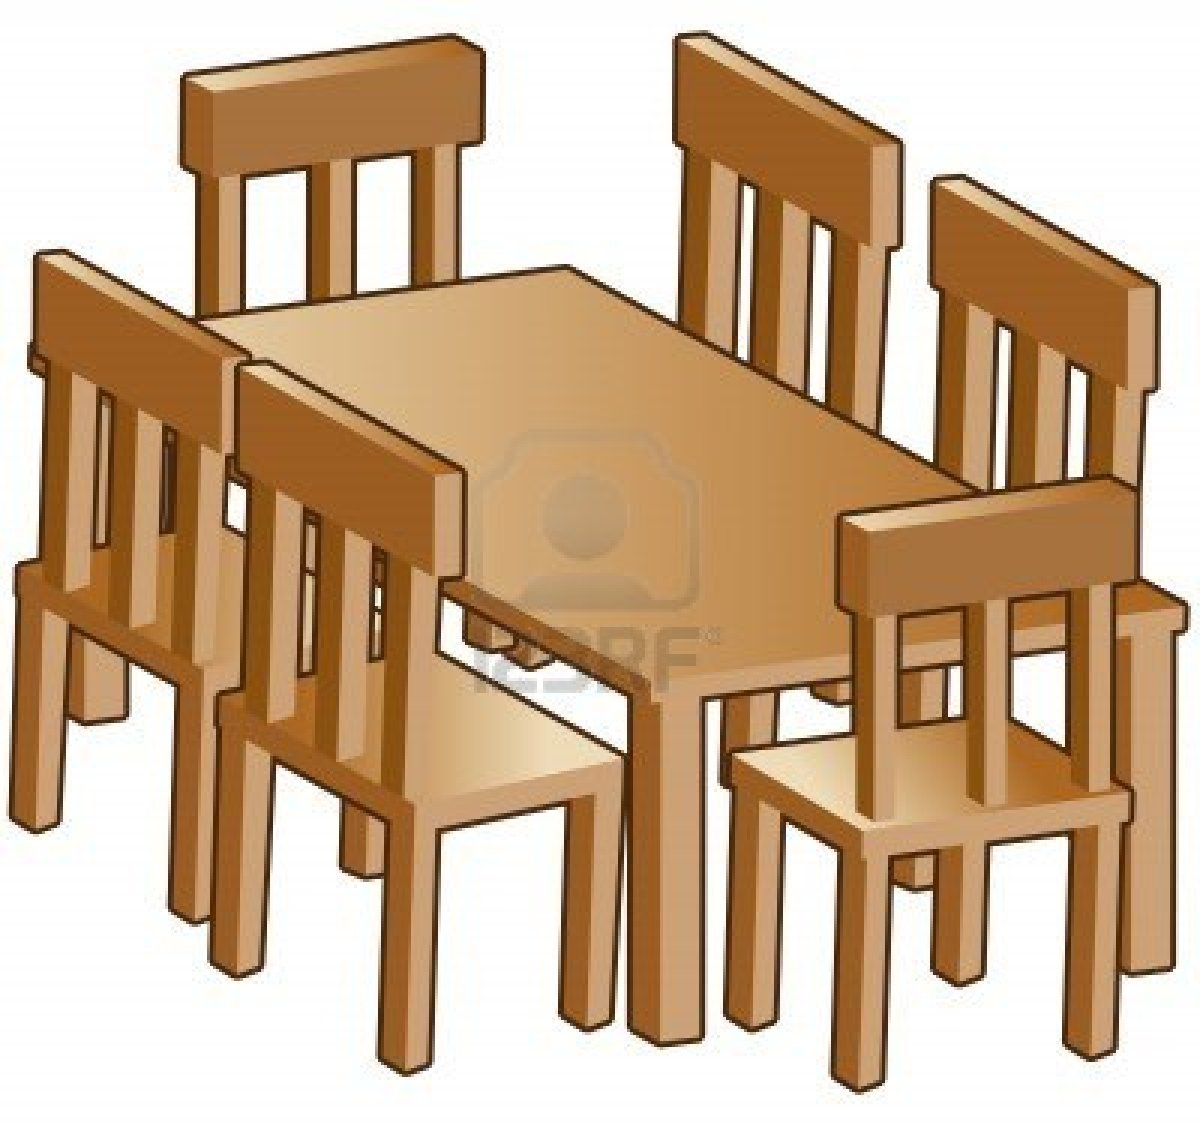 furniture-clipart-dining-room-furniture-clipart-1.jpg 1200 x 1125. Download. Furniture 05 Clipart ...